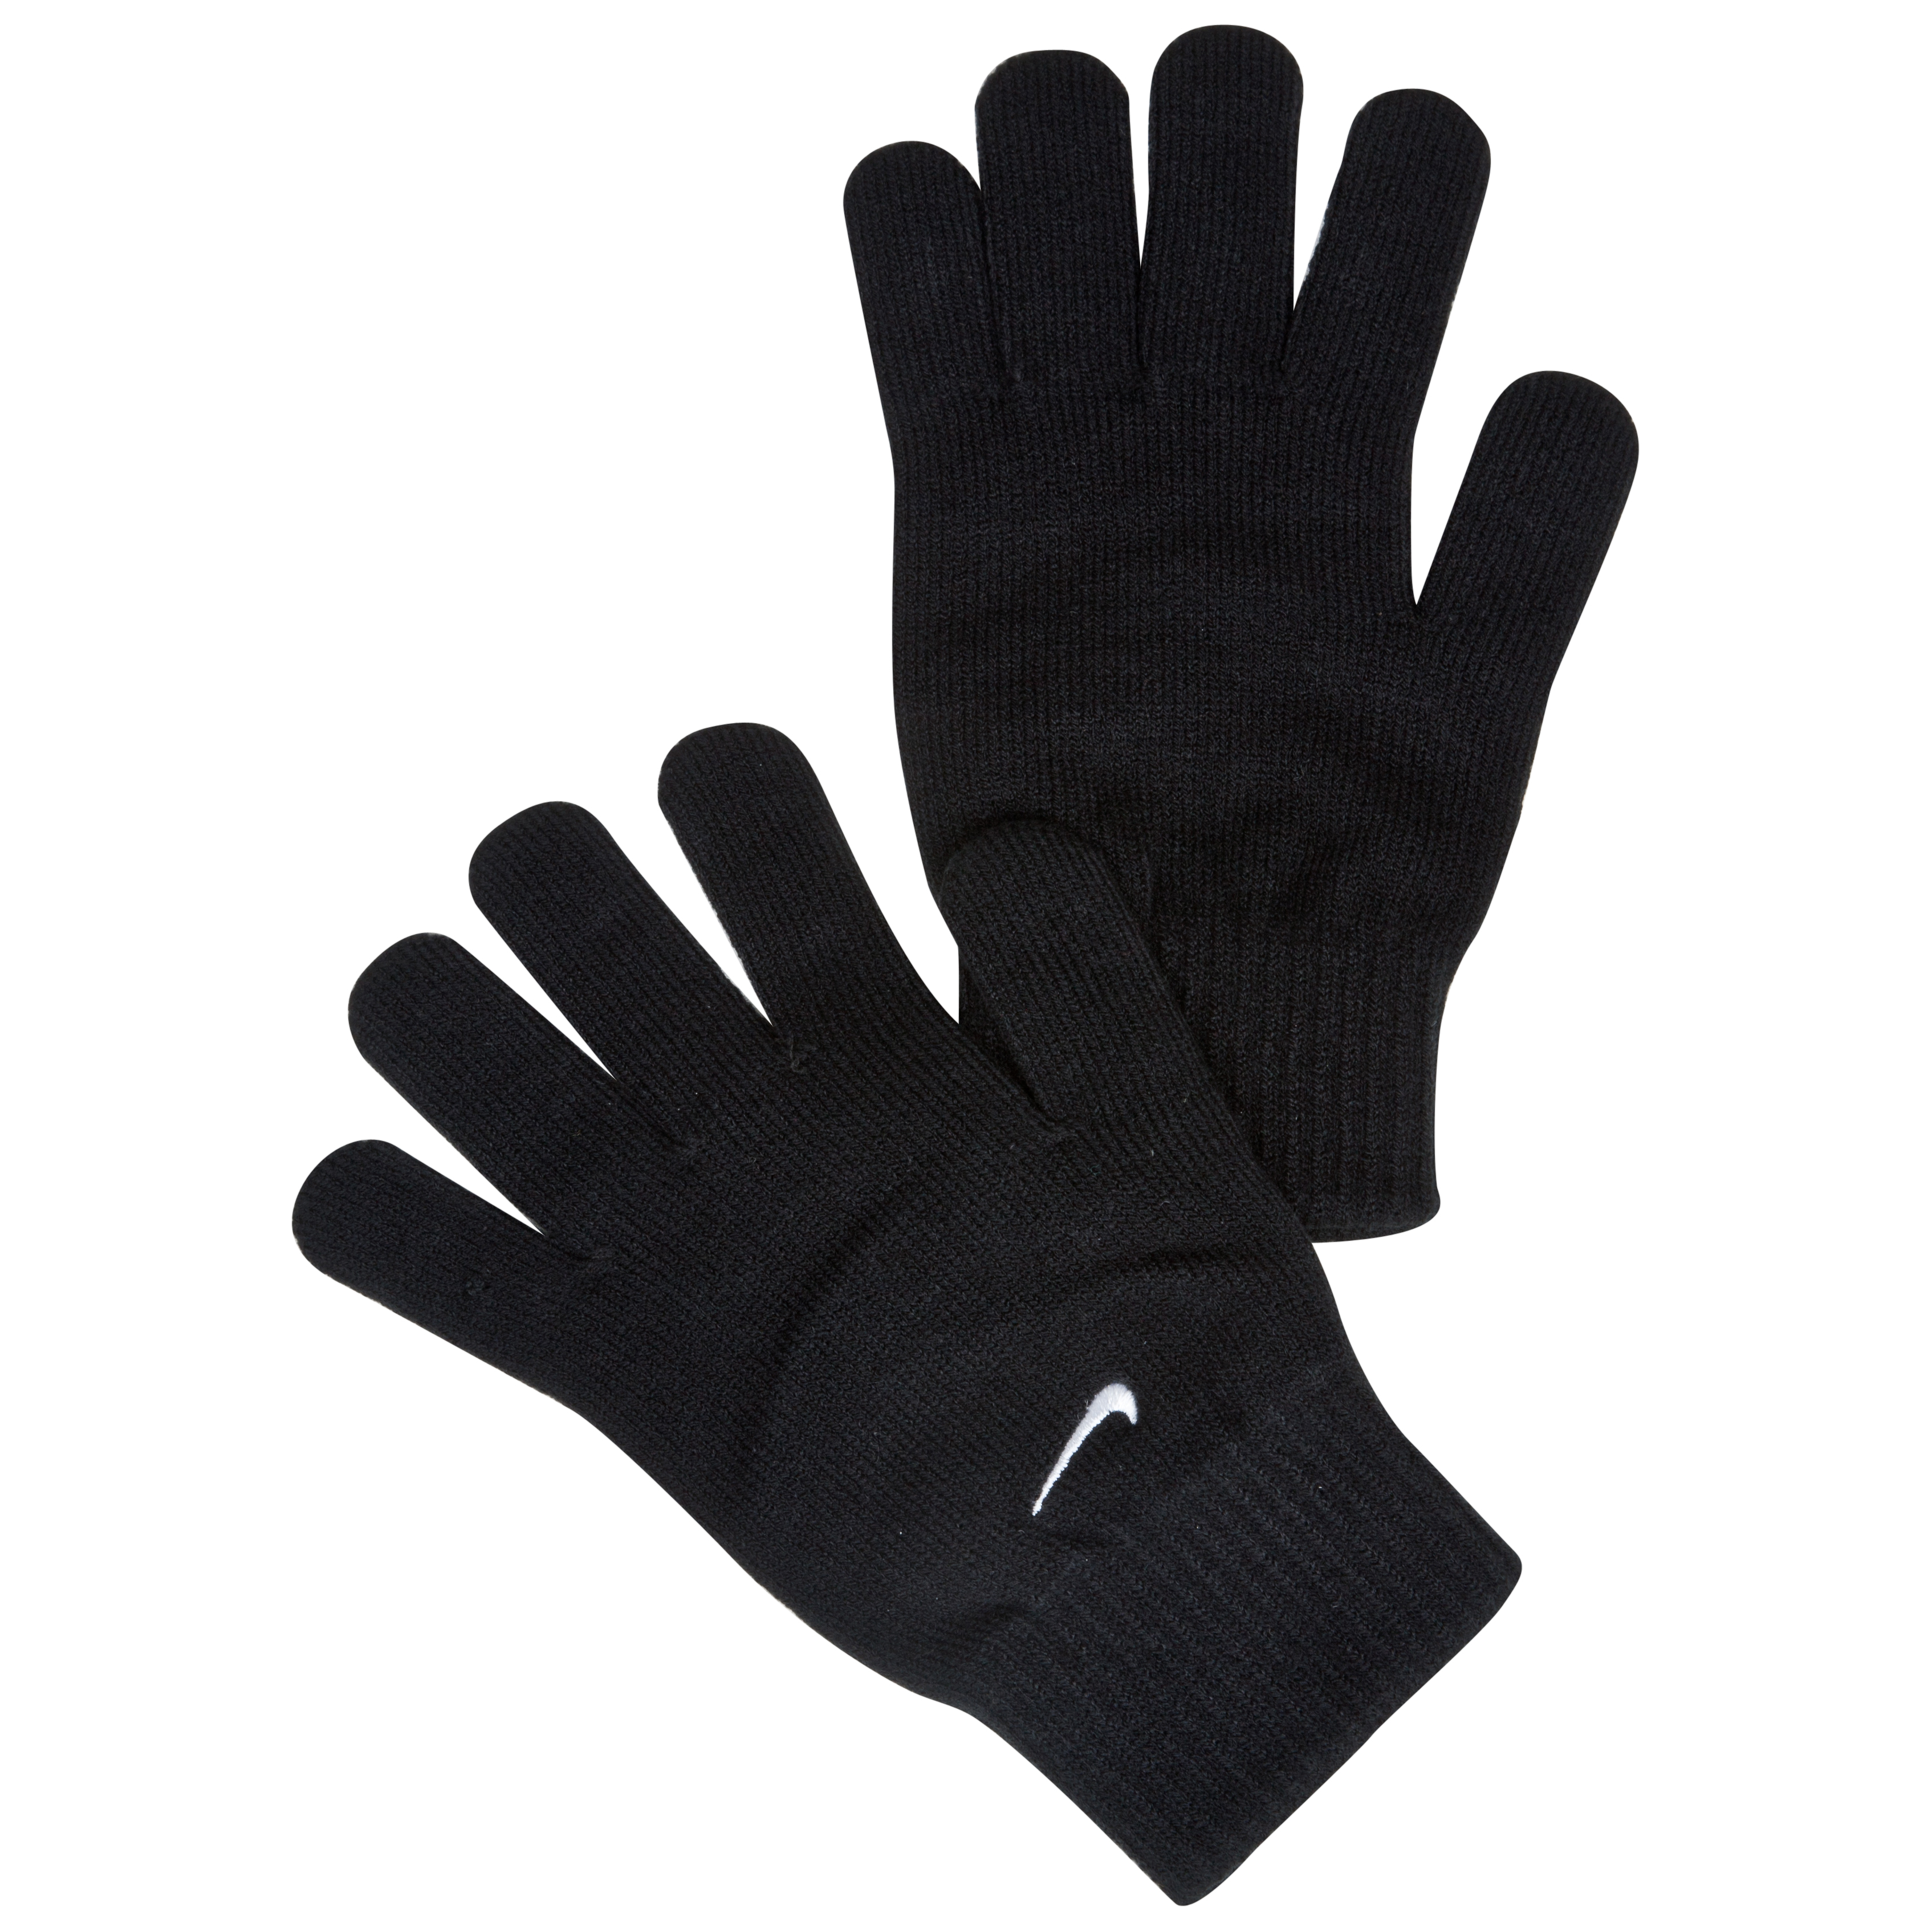 Nike Knitted Gloves - Black/White